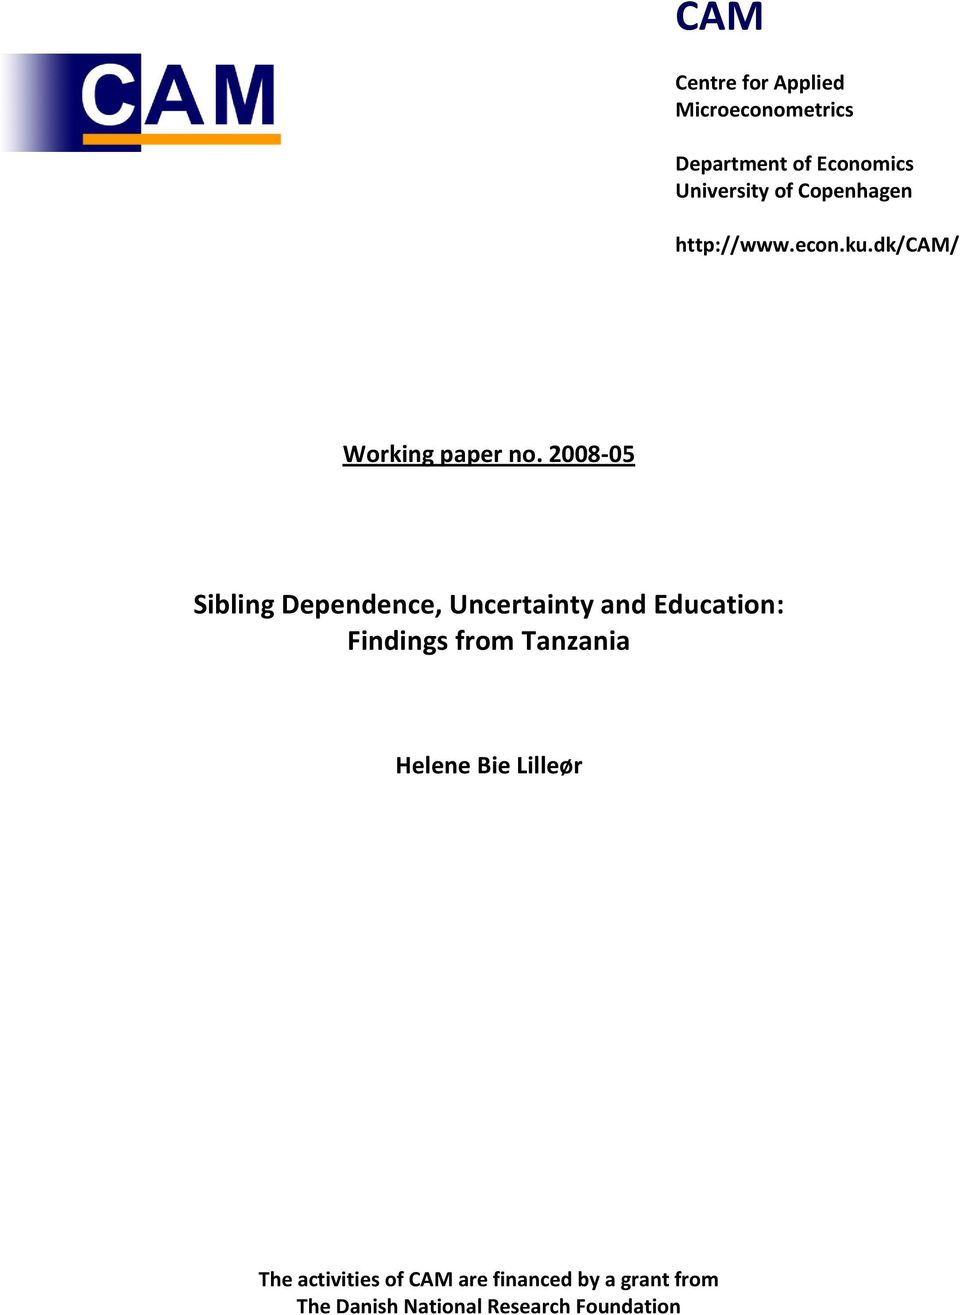 2008-05 Sibling Dependence, Uncertainty and Education: Findings from Tanzania